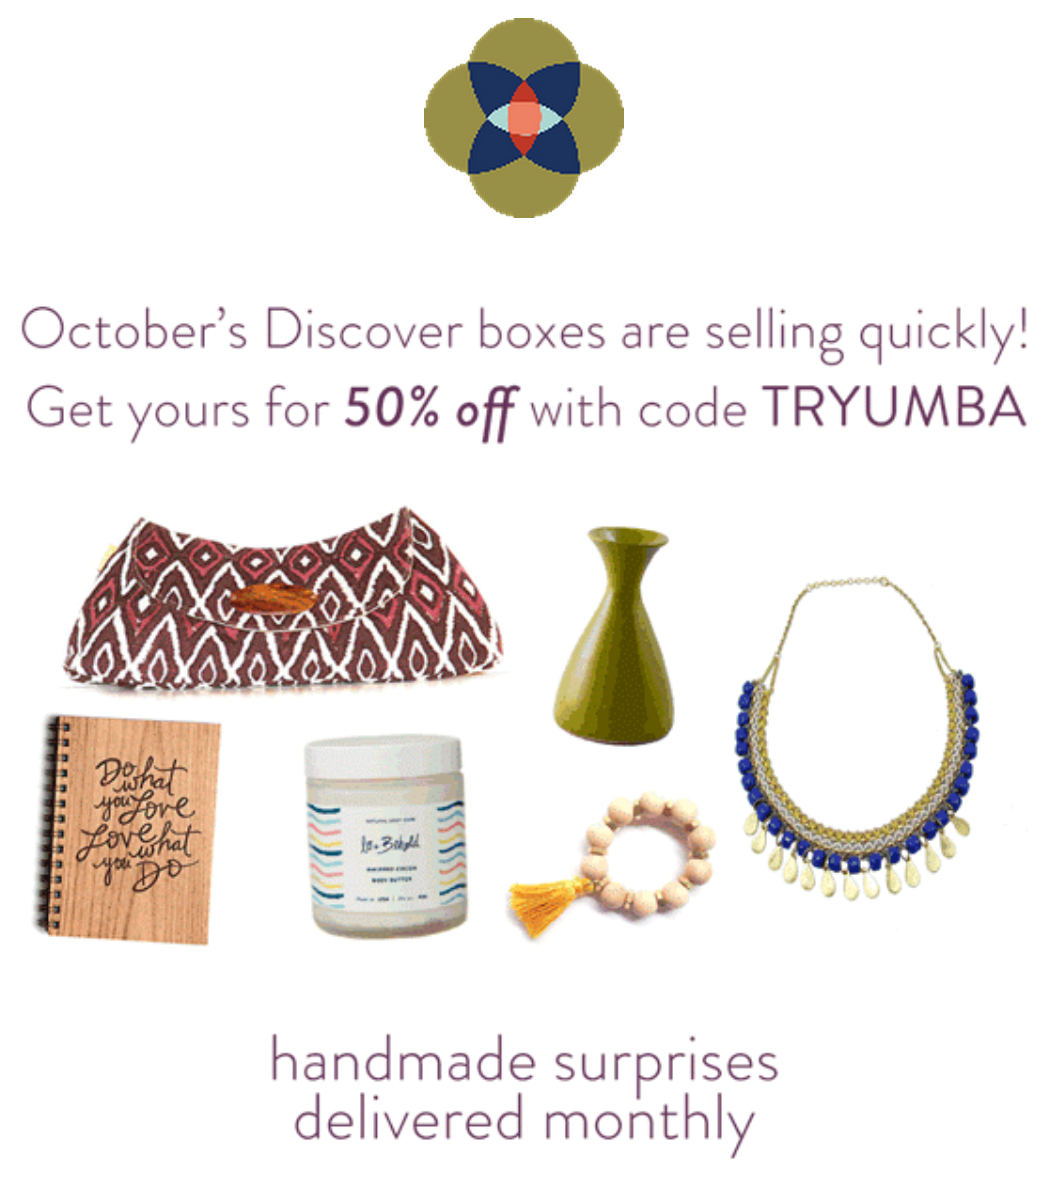 Umba Box 50% off Deal